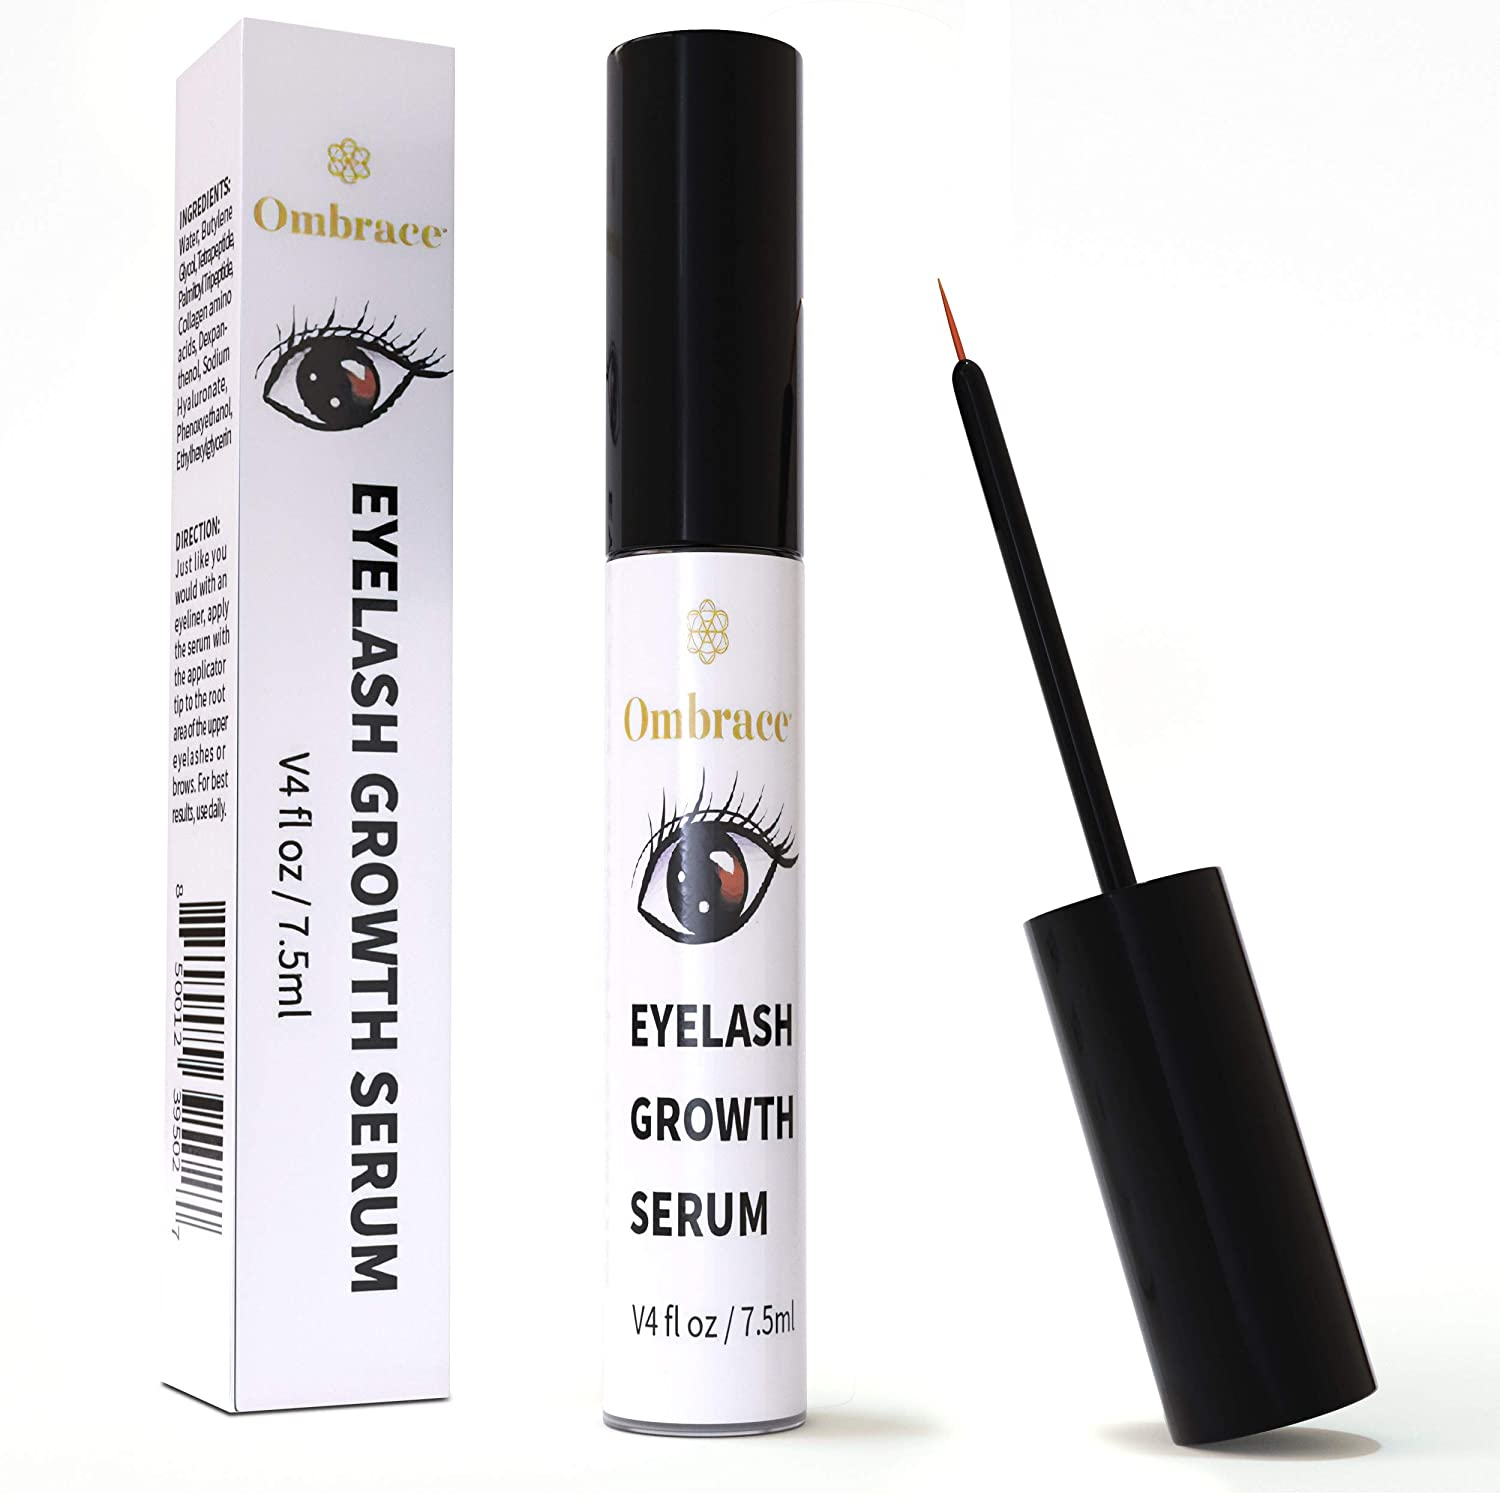 Eyelash Growth Serum - Eyebrow Growth Serum - Irritation Free Formula - Lash & Brow Boost Serum - Enhancer For Longer & Thicker Eyelashes & Eyebrows - [Bonus Size 7.5ml] By Ombrace Eyelash Serum